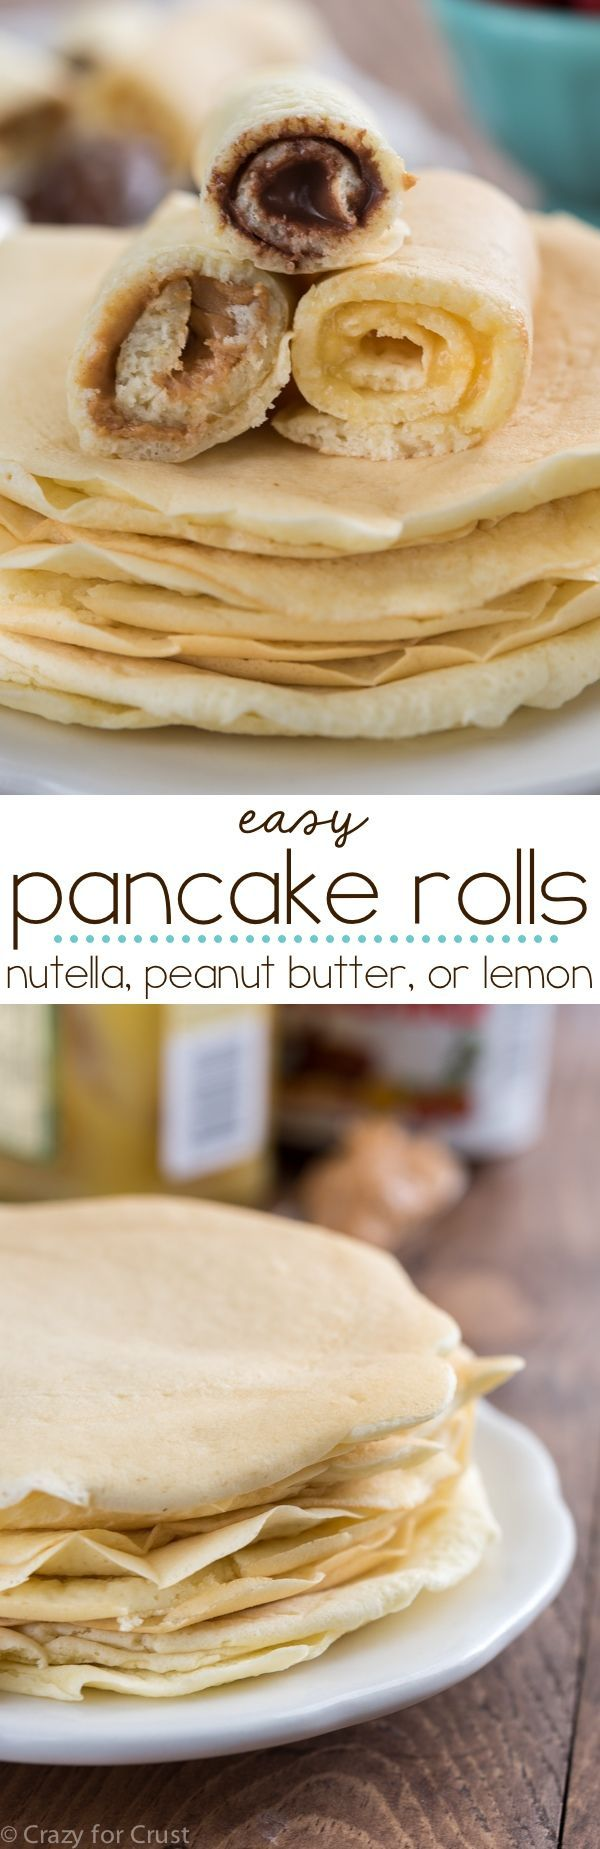 EASY Pancake Rolls with three fillings: Nutella, Peanut Butter, or Lemon Curd! These pancakes are a family favorite recipe and are a foolproof fast breakfast!